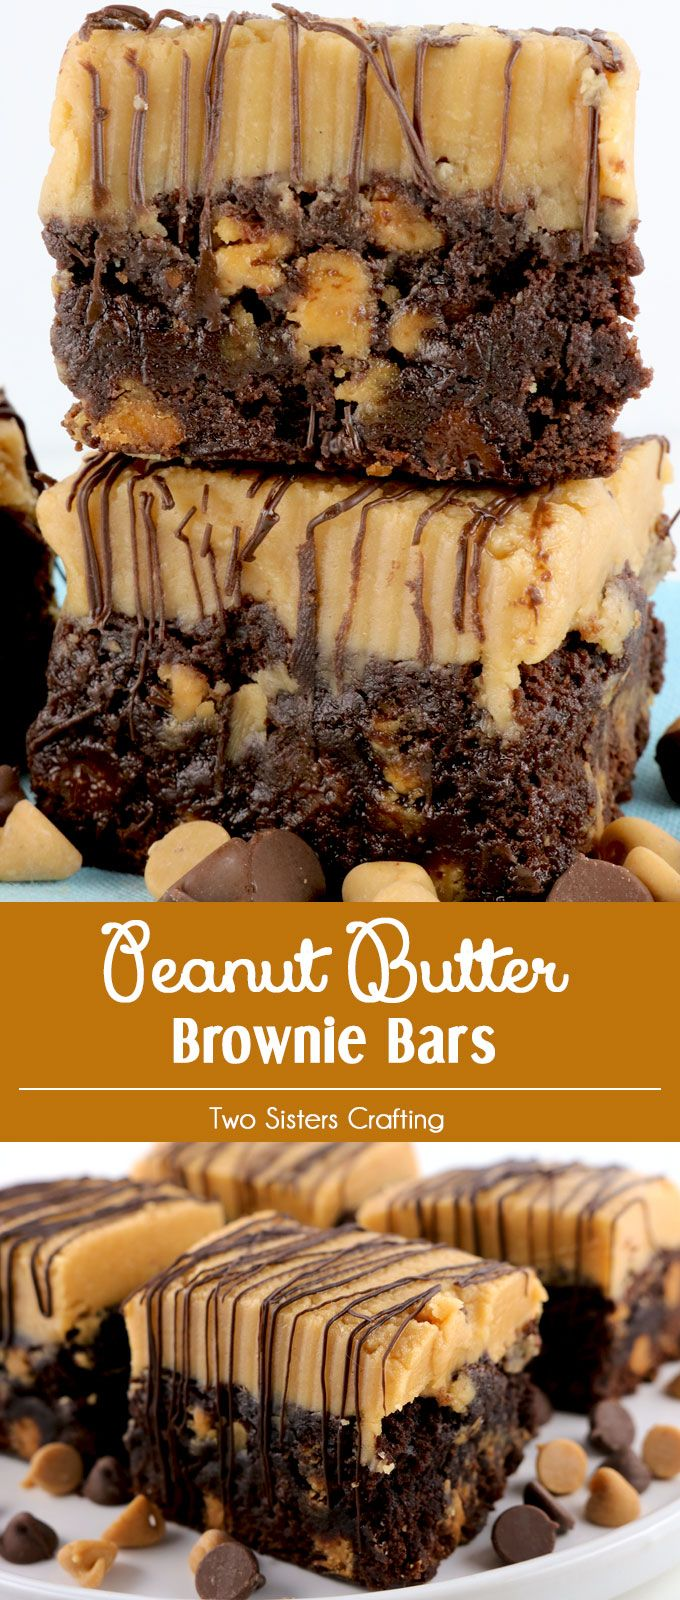 Peanut Butter Brownie Bars - two classic dessert tastes that taste great together. These yummy cookie bars are delicious, easy to make and will be an instant family favorite. Rich chocolate and sweet peanut butter combine to make a delicious treat for Fall, Thanksgiving, Christmas or just a random Monday. Make your family a Christmas Treat that they are sure to love! Pin this yummy Holiday Brownie Recipe now and follow us for more more great Christmas Food ideas.